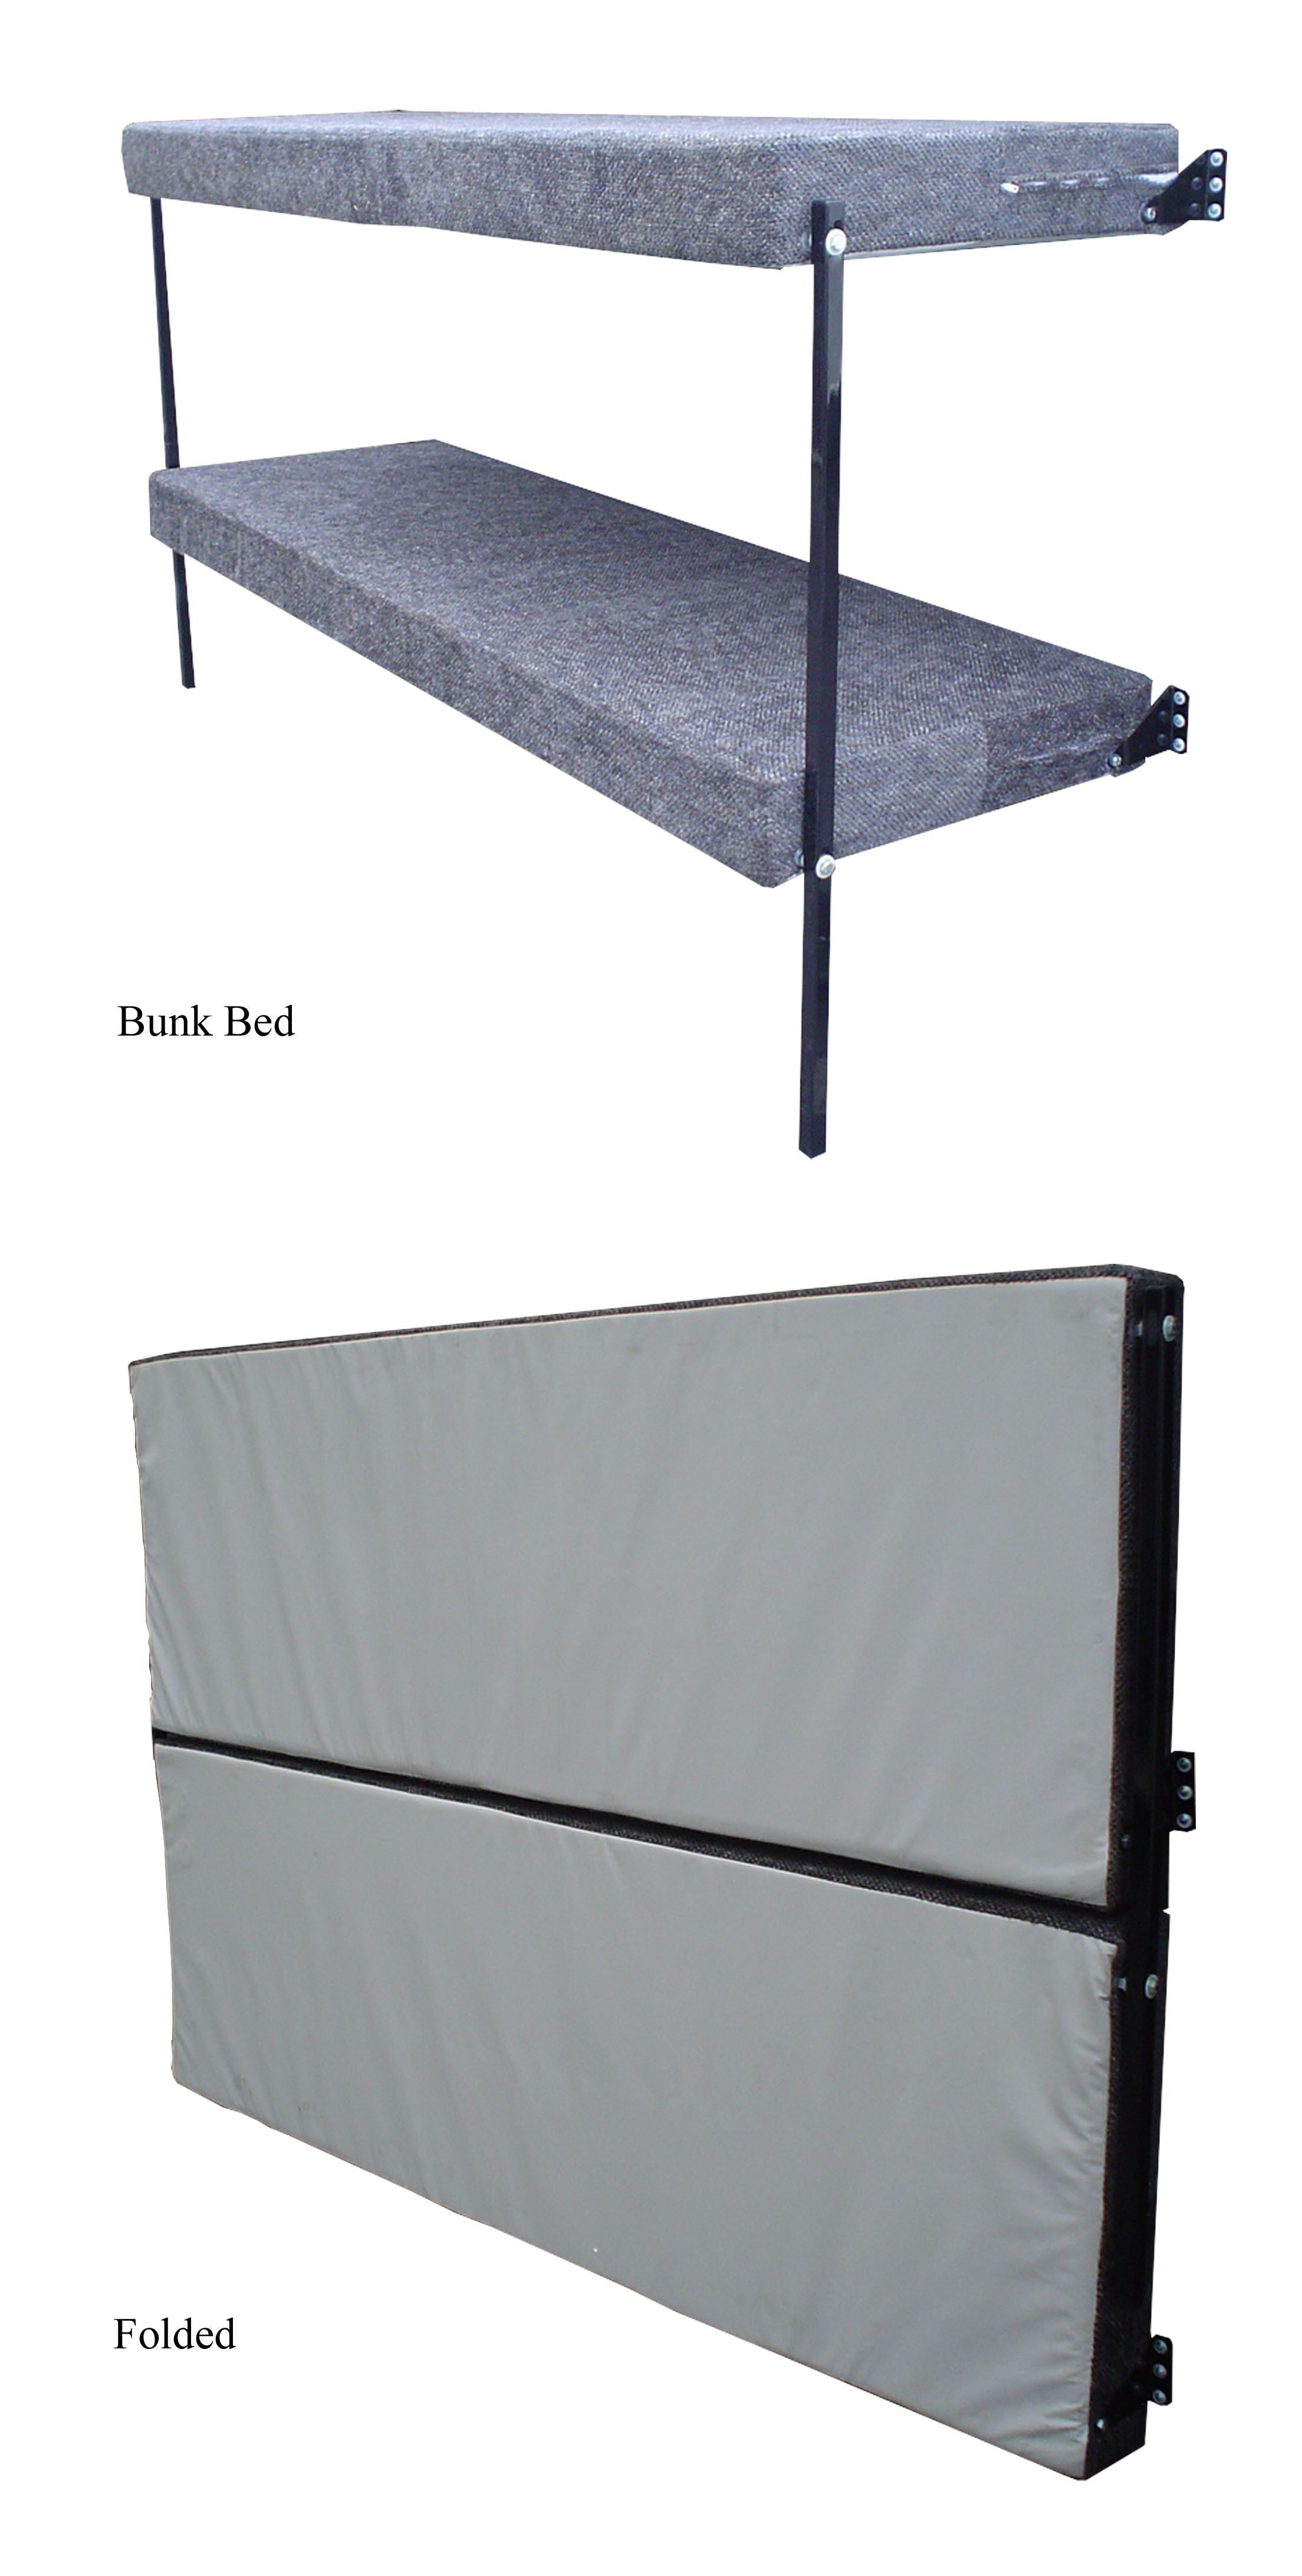 Fold Up Kids Bed Wall Mount Folding Bunk Bed Cabin Pinterest Bunk Bed